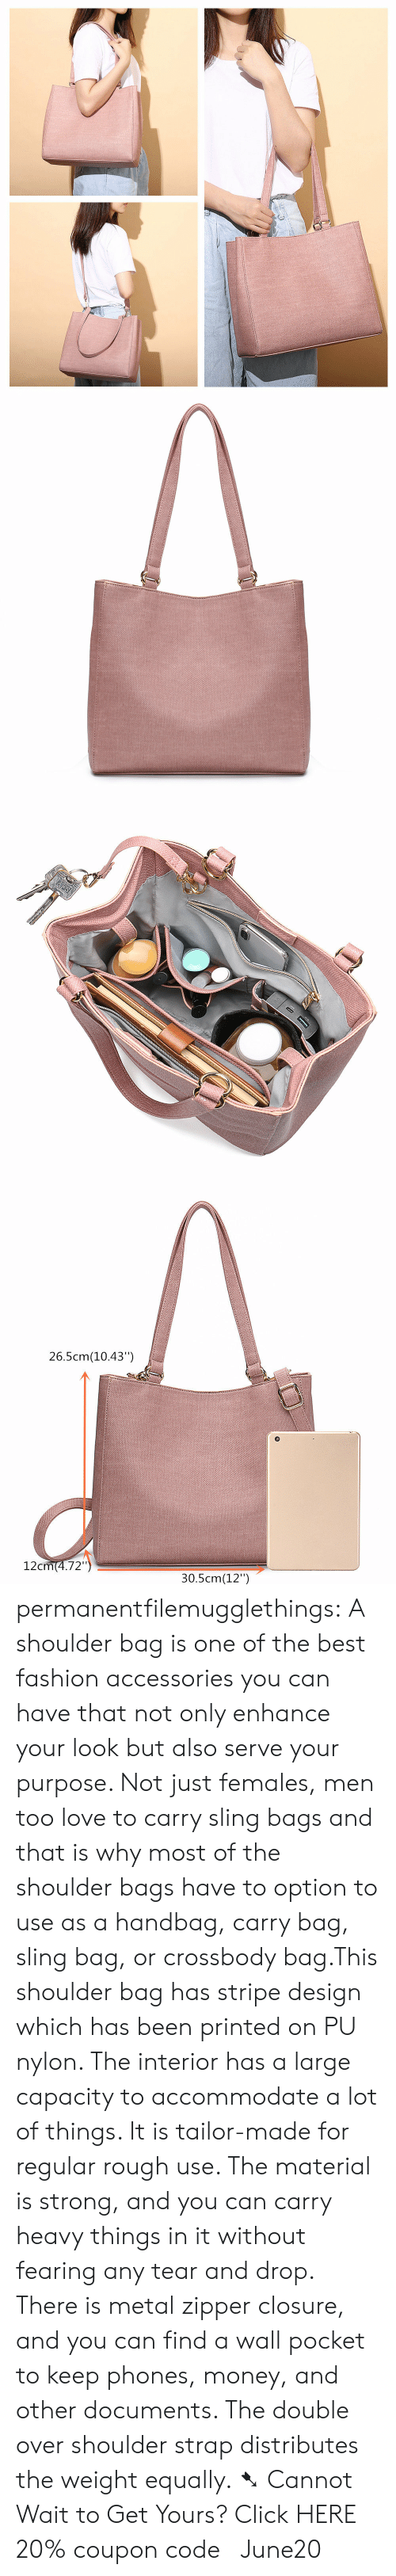 """closure: 26.5cm(10.43"""")  12cm(4.72"""")  30.5cm(12"""") permanentfilemugglethings: A shoulder bag is one of the best fashion accessories you can have that not only enhance your look but also serve your purpose. Not just females, men too love to carry sling bags and that is why most of the shoulder bags have to option to use as a handbag, carry bag, sling bag, or crossbody bag.This shoulder bag has stripe design which has been printed on PU nylon. The interior has a large capacity to accommodate a lot of things. It is tailor-made for regular rough use. The material is strong, and you can carry heavy things in it without fearing any tear and drop. There is metal zipper closure, and you can find a wall pocket to keep phones, money, and other documents. The double over shoulder strap distributes the weight equally. ➷ Cannot Wait to Get Yours? Click HERE 20% coupon code: June20"""